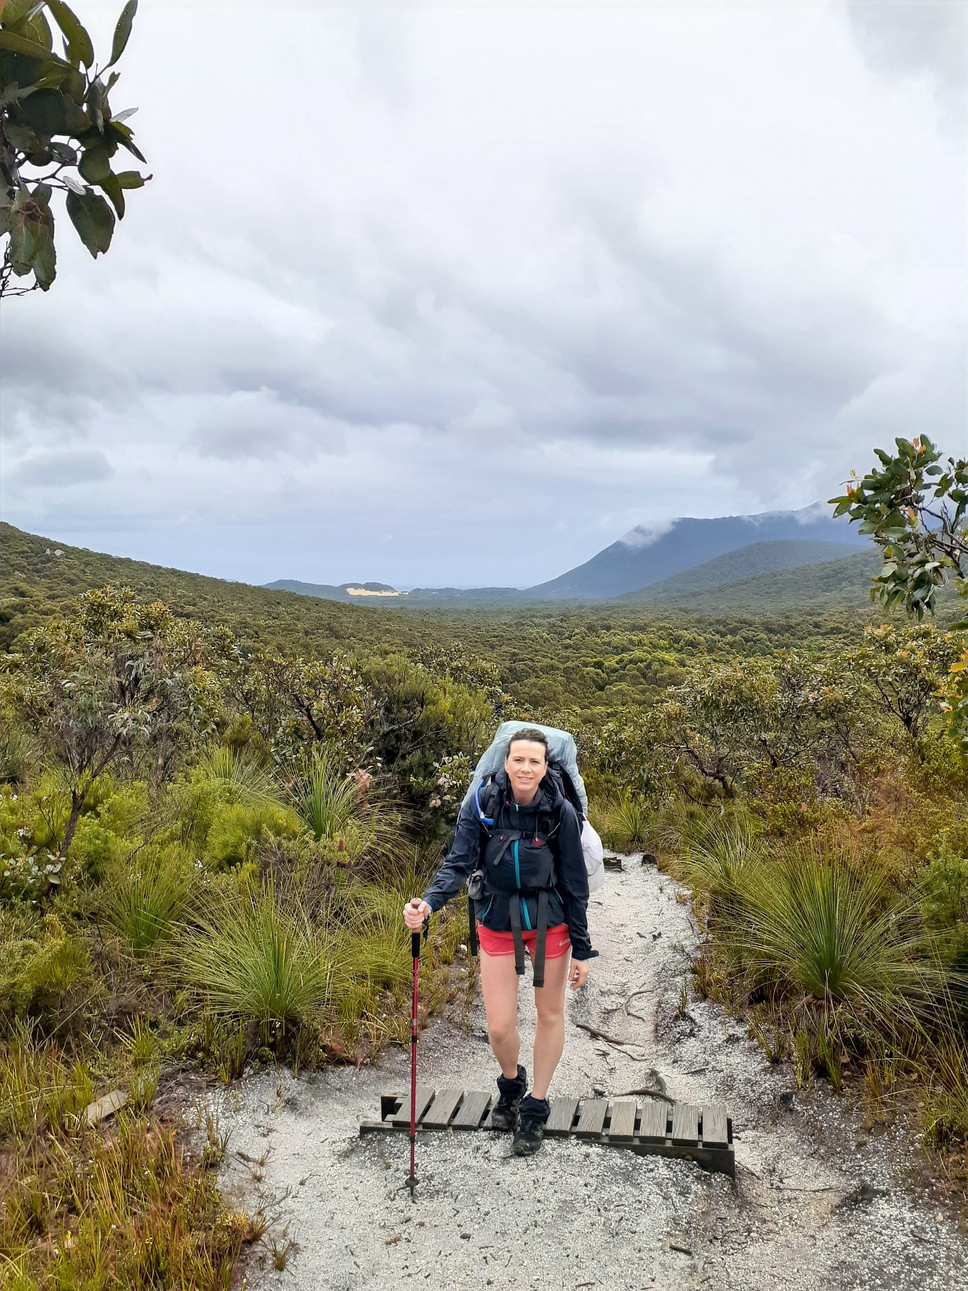 The Cathartic Experience Of Hiking 22 km - Wilson's Prom; Sealer's Cove to Half Way Hut